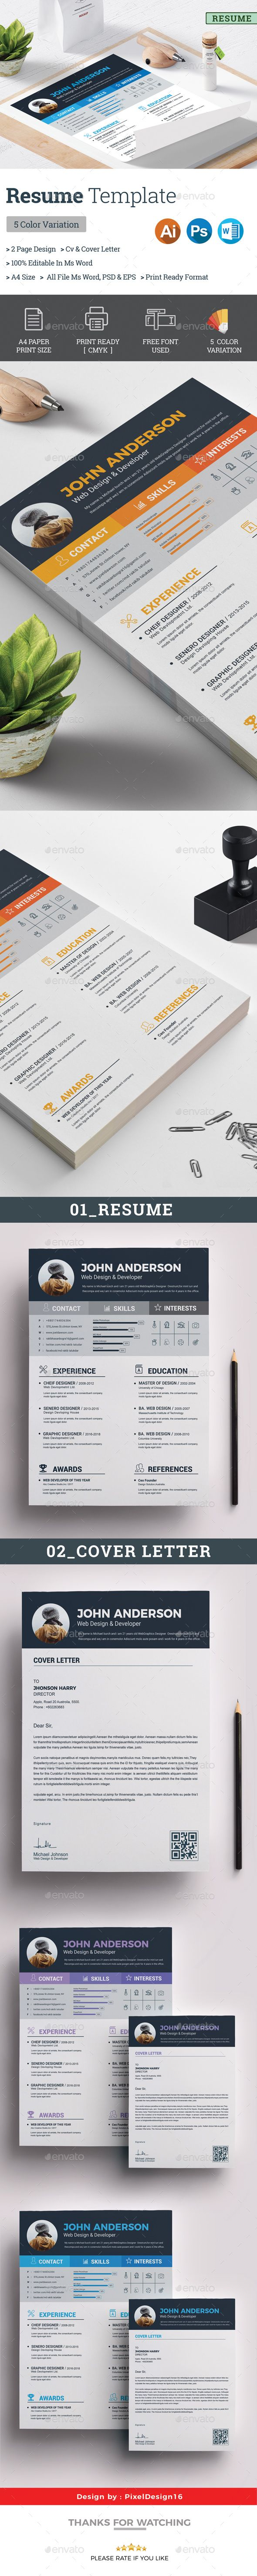 Resume #cv template #cv design  • Download here → https://graphicriver.net/item/resume/21285979?ref=pxcr